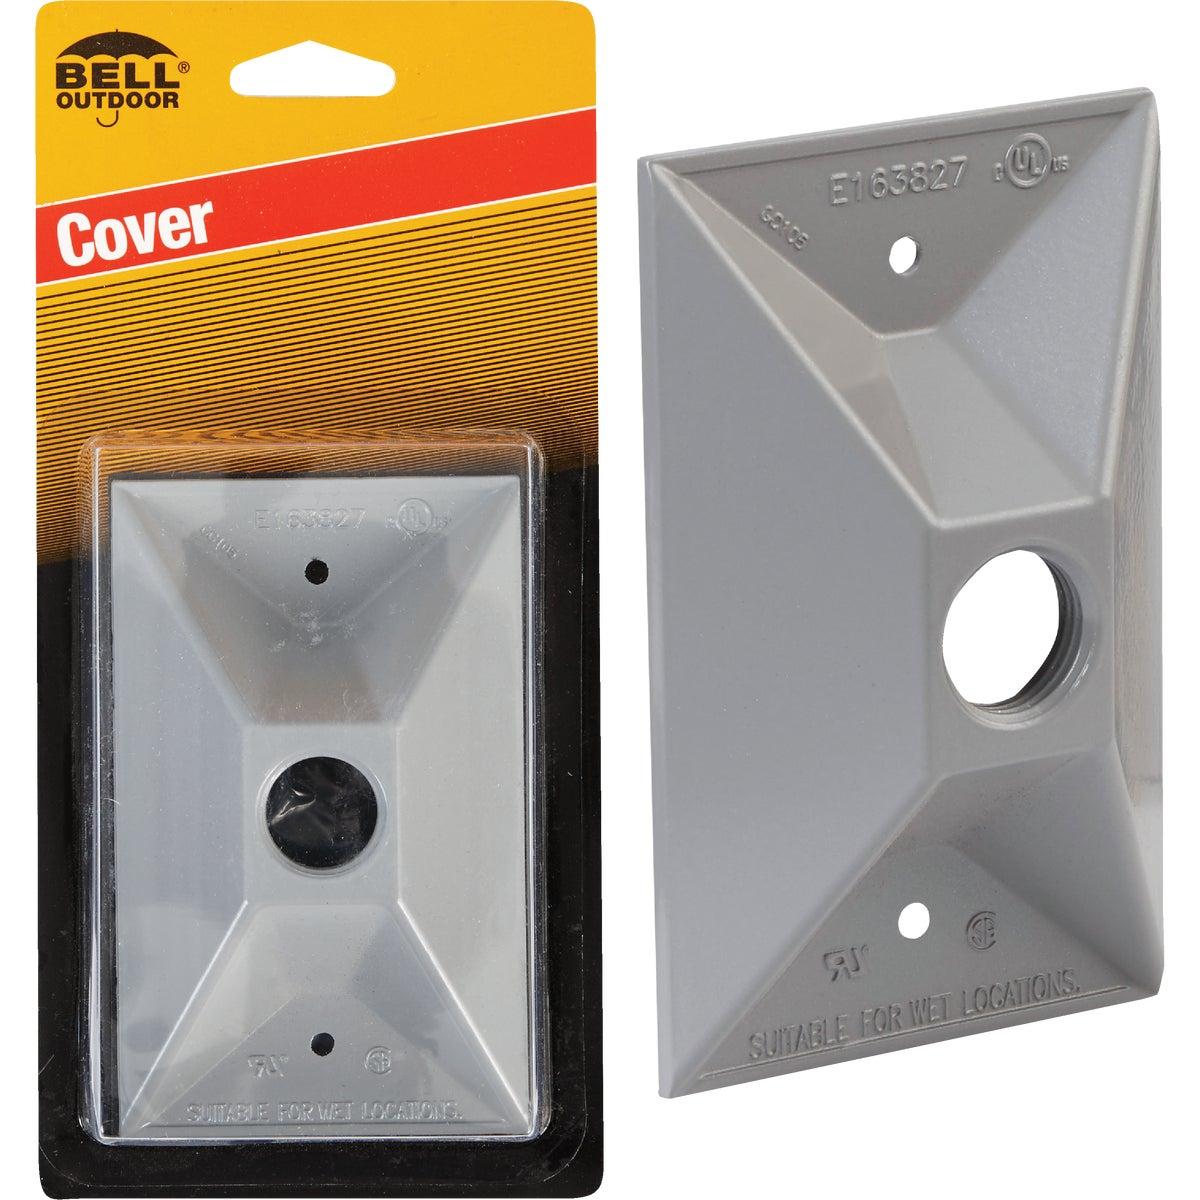 GRAY OUTDOOR COVER - 5945-1 by Hubbell